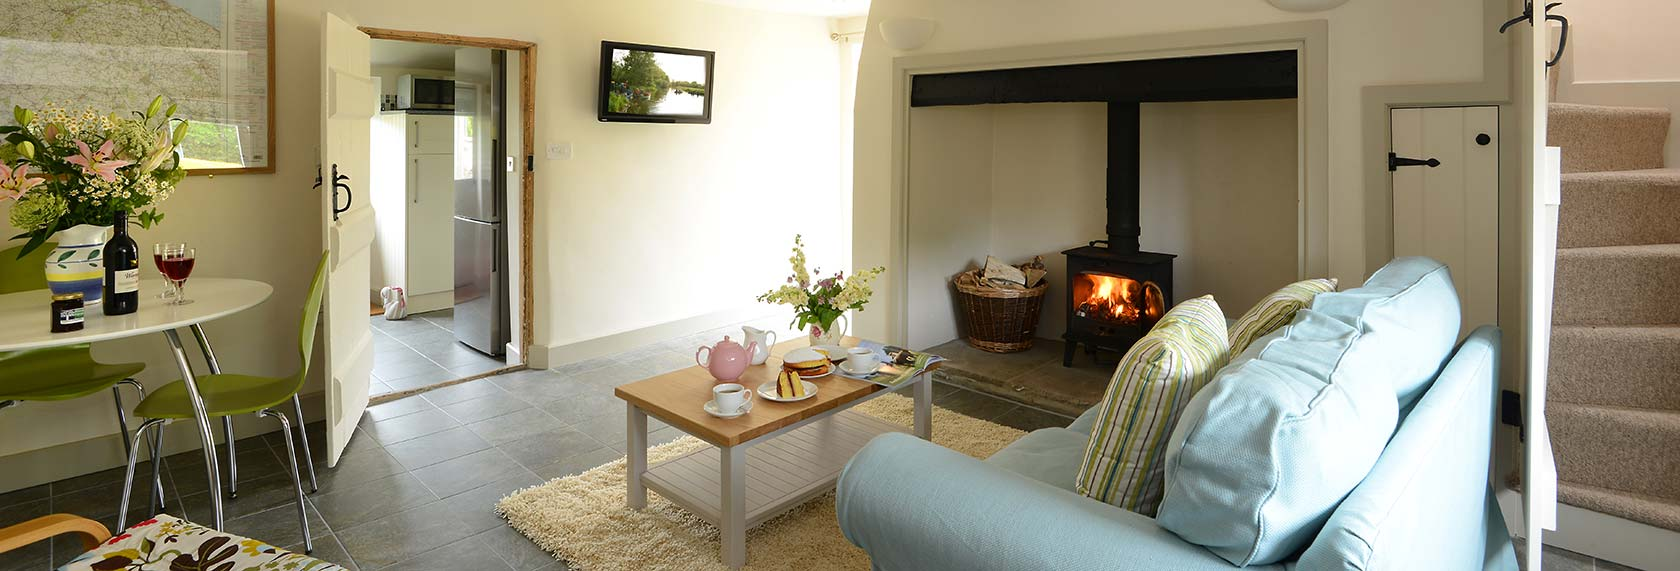 Garden Cottage, Rookery Farm Holiday Accommodation, north Norfolk